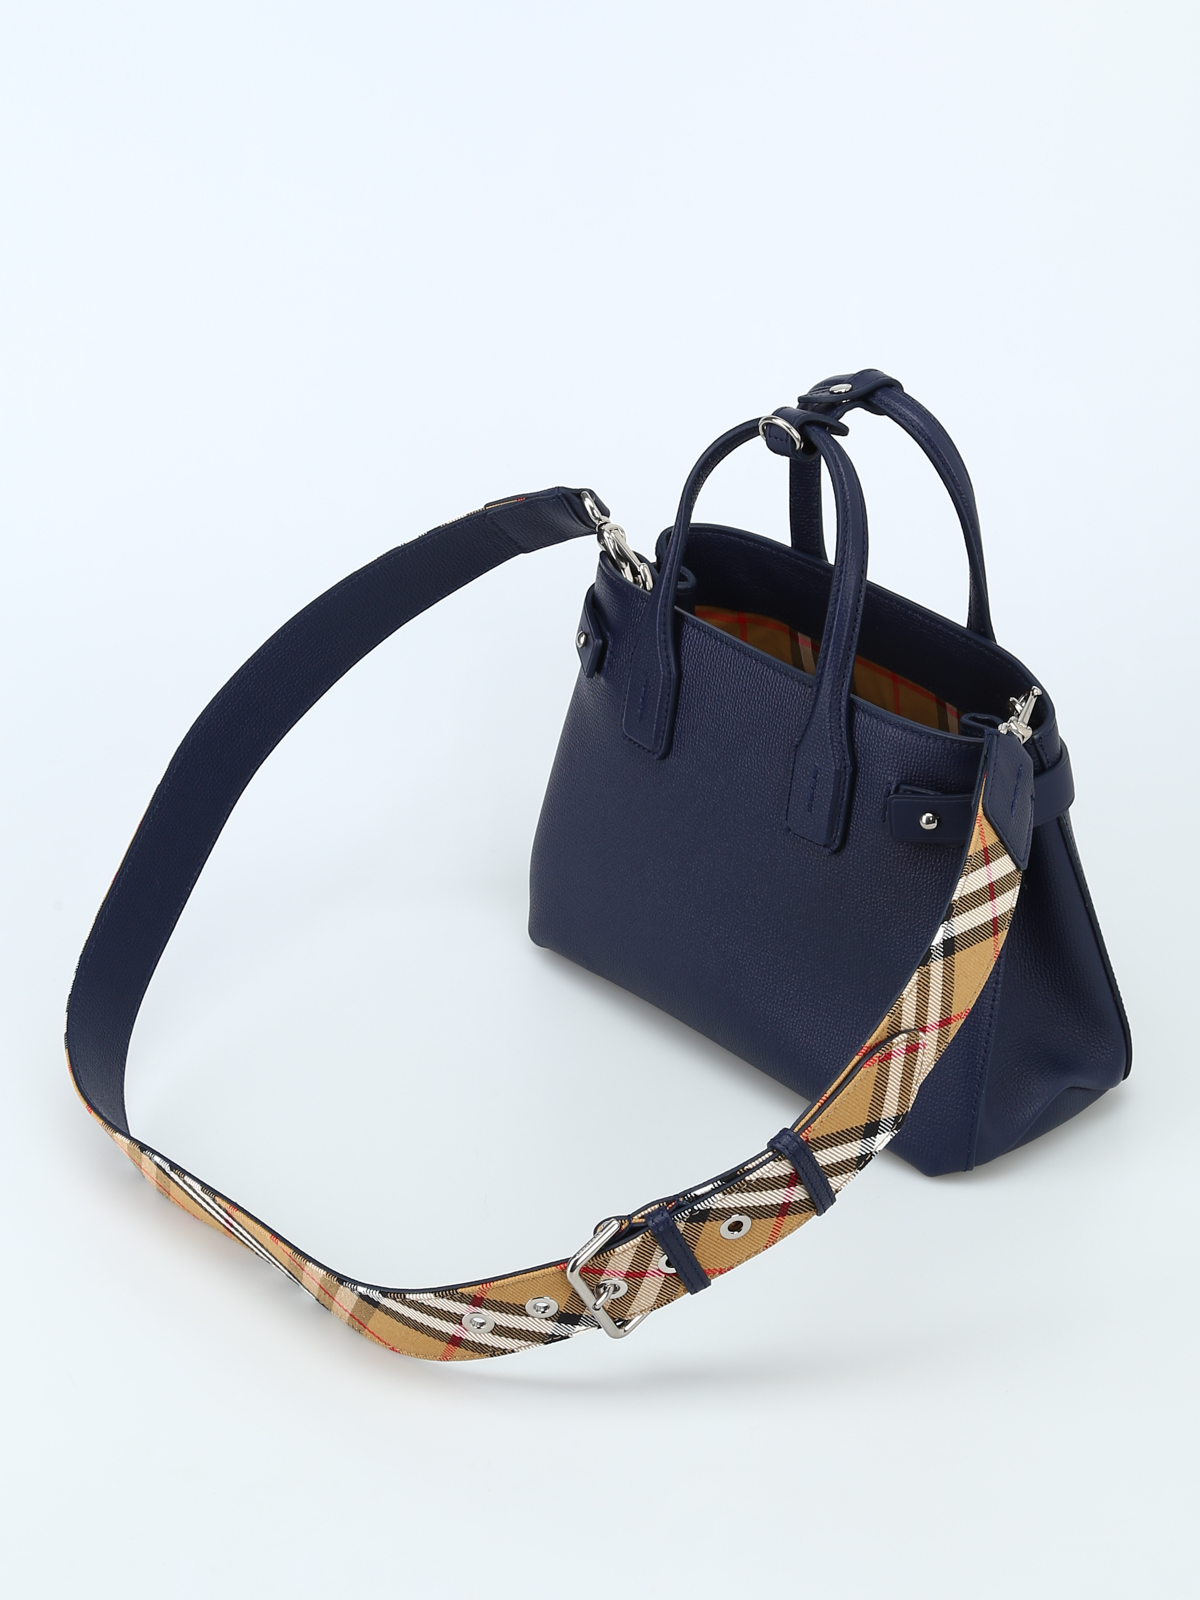 45e835eedfcf iKRIX BURBERRY  cross body bags - The Small Banner regency blue leather bag